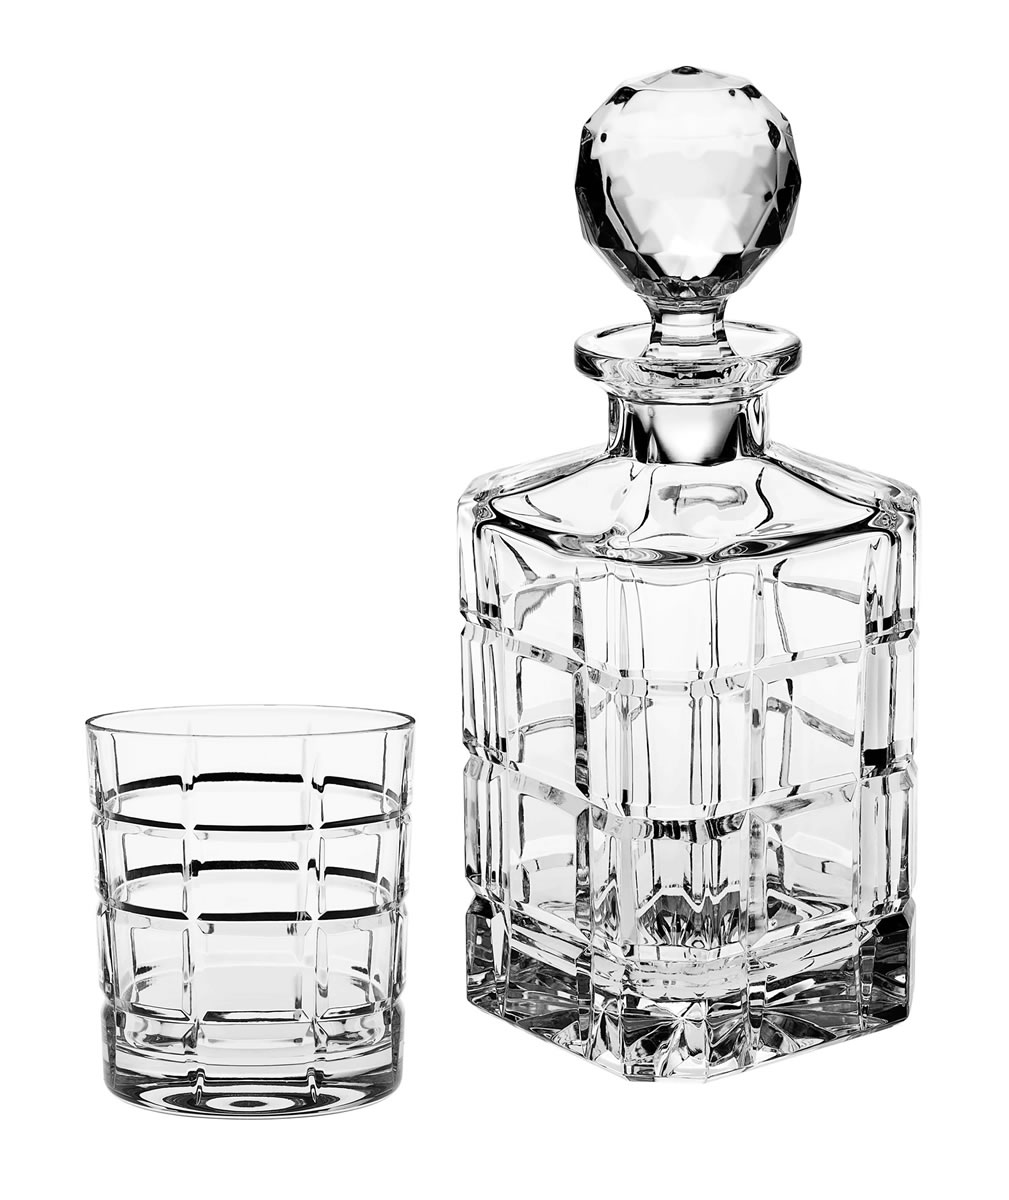 Square Cut Glass Crystal Whisky DECANTER CARAFE Fluted Retro Spirit Vintage English LS